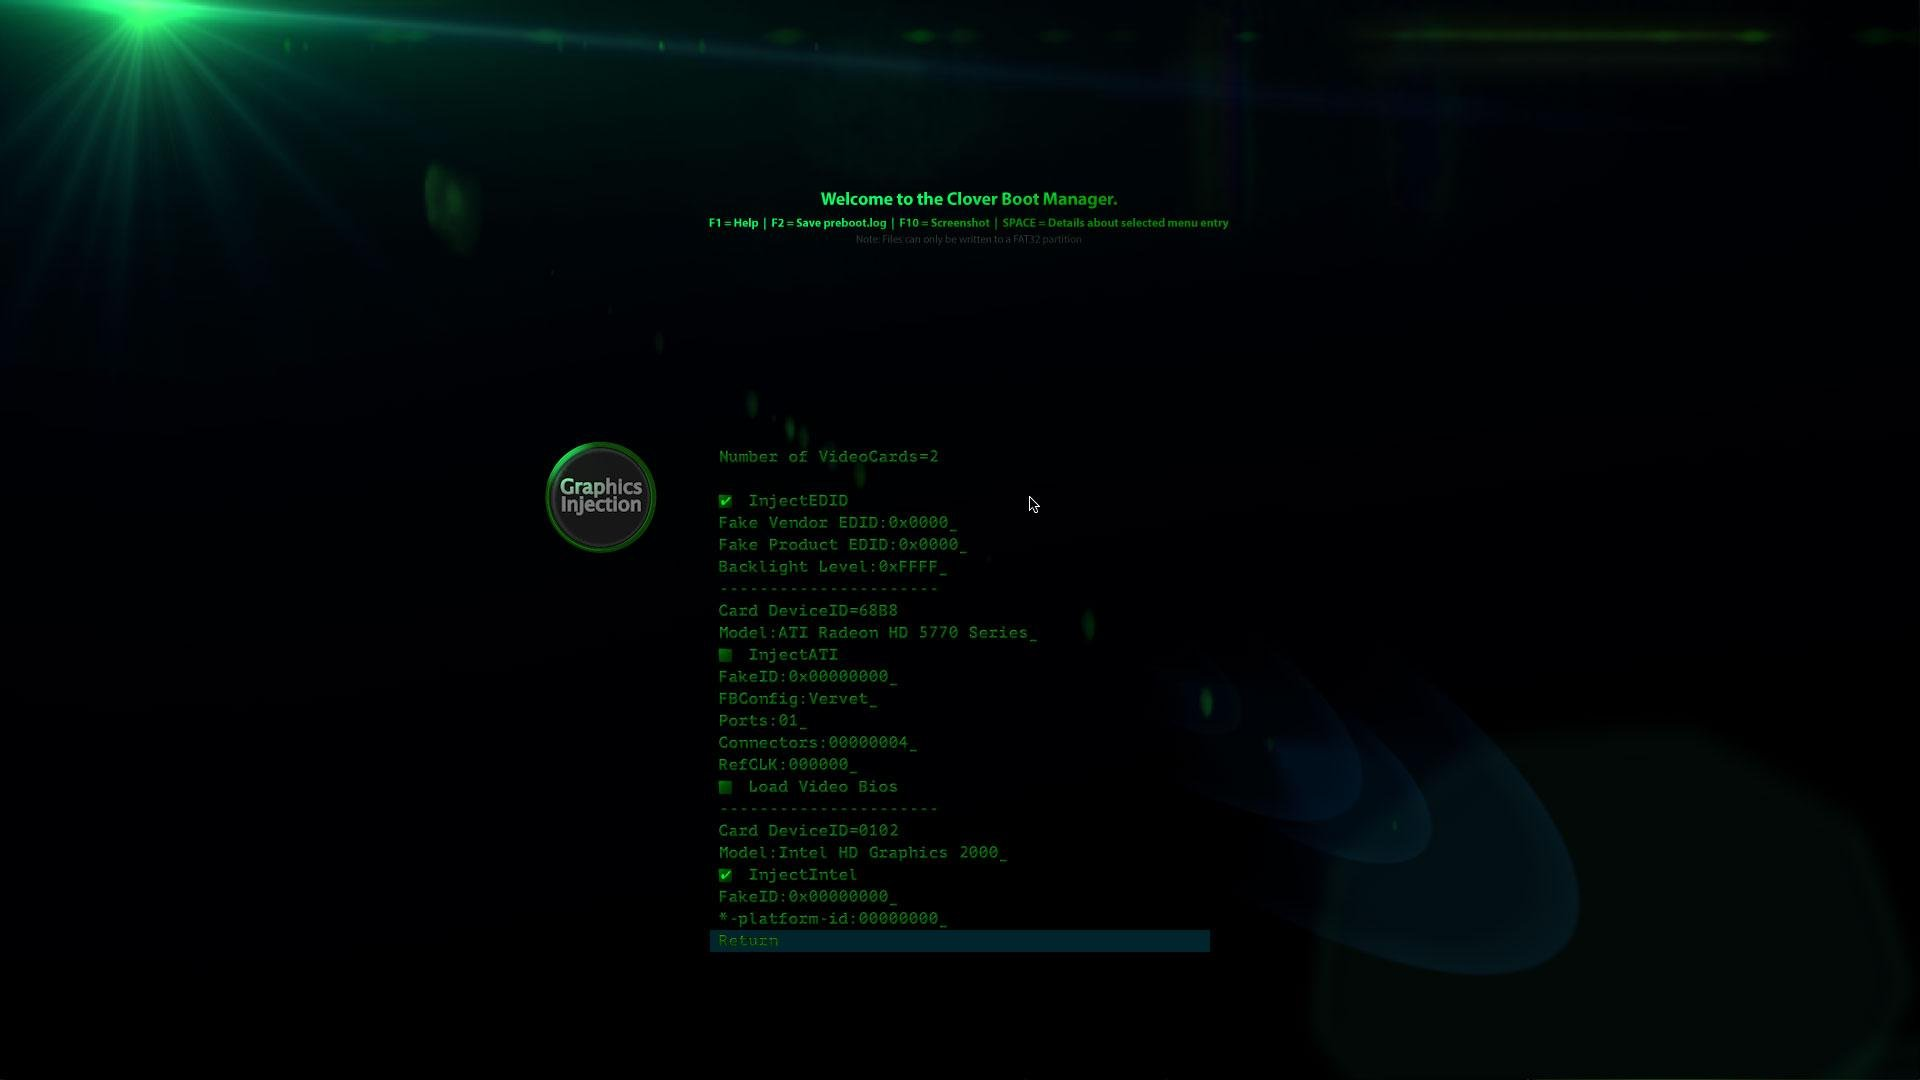 chameleon bootloader iso full download